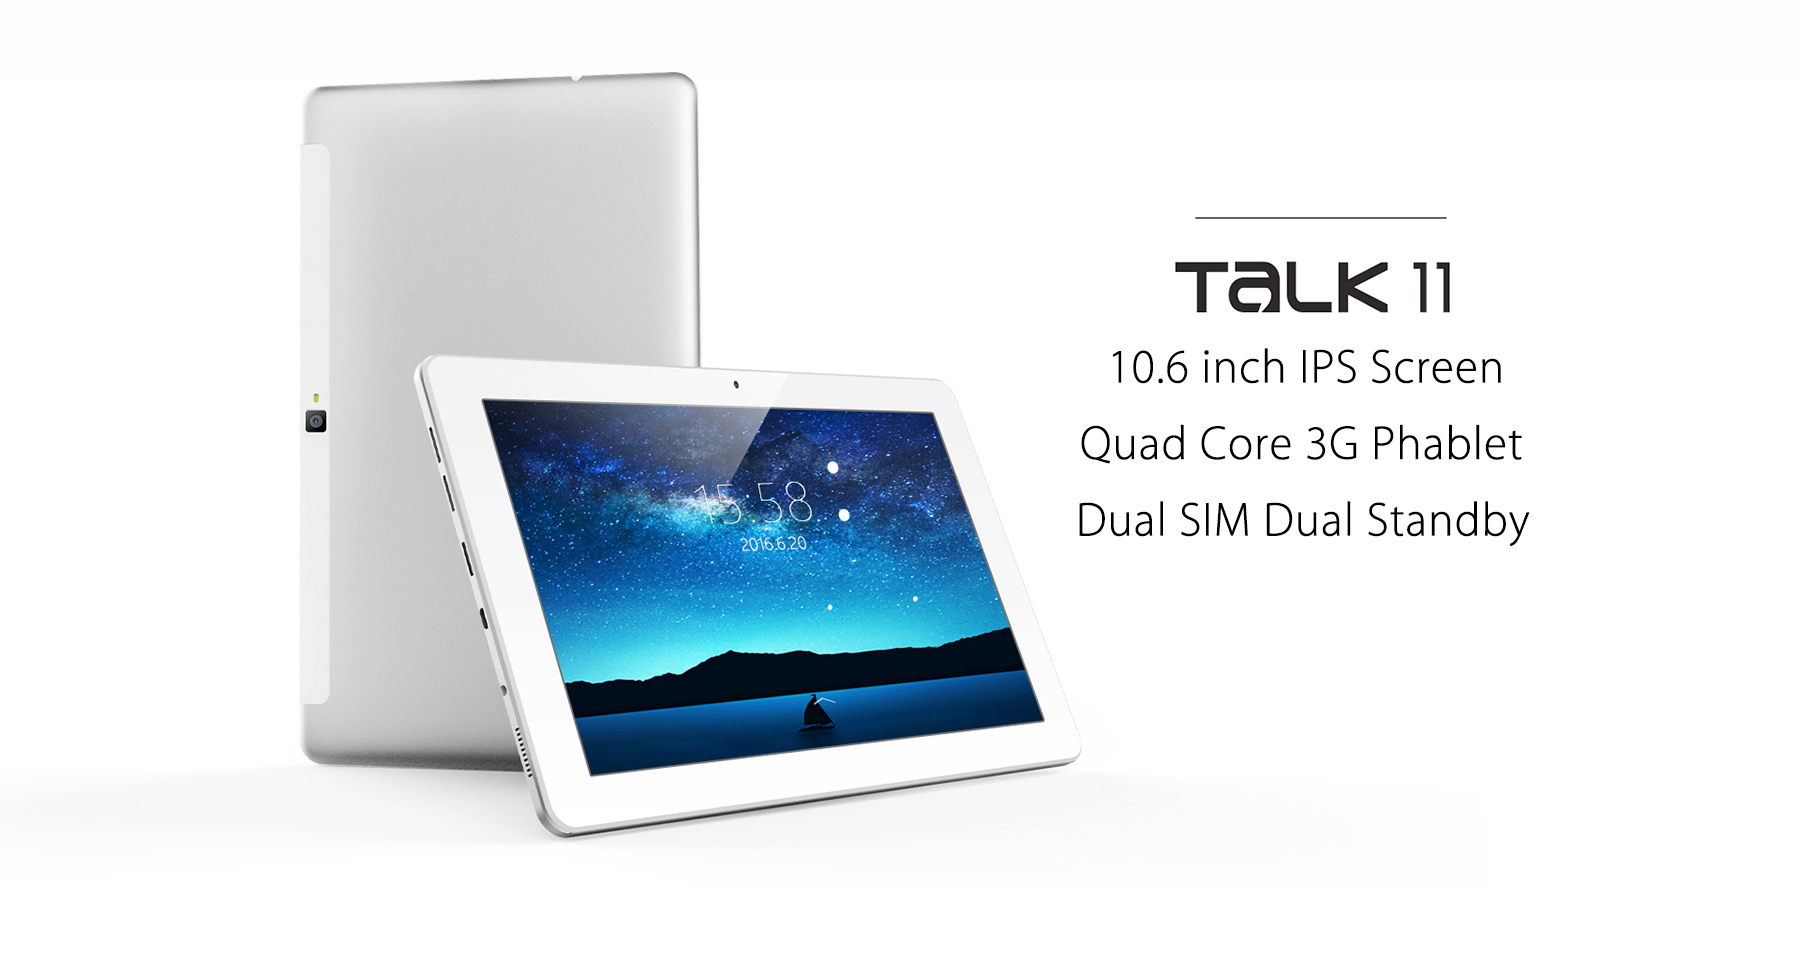 Cube Talk 11 3G 10.6 inch Android 5.1 Phone Tablet PC MTK8321 Quad Core 1.3GHz IPS Screen 1GB RAM 16GB ROM Bluetooth 4.0